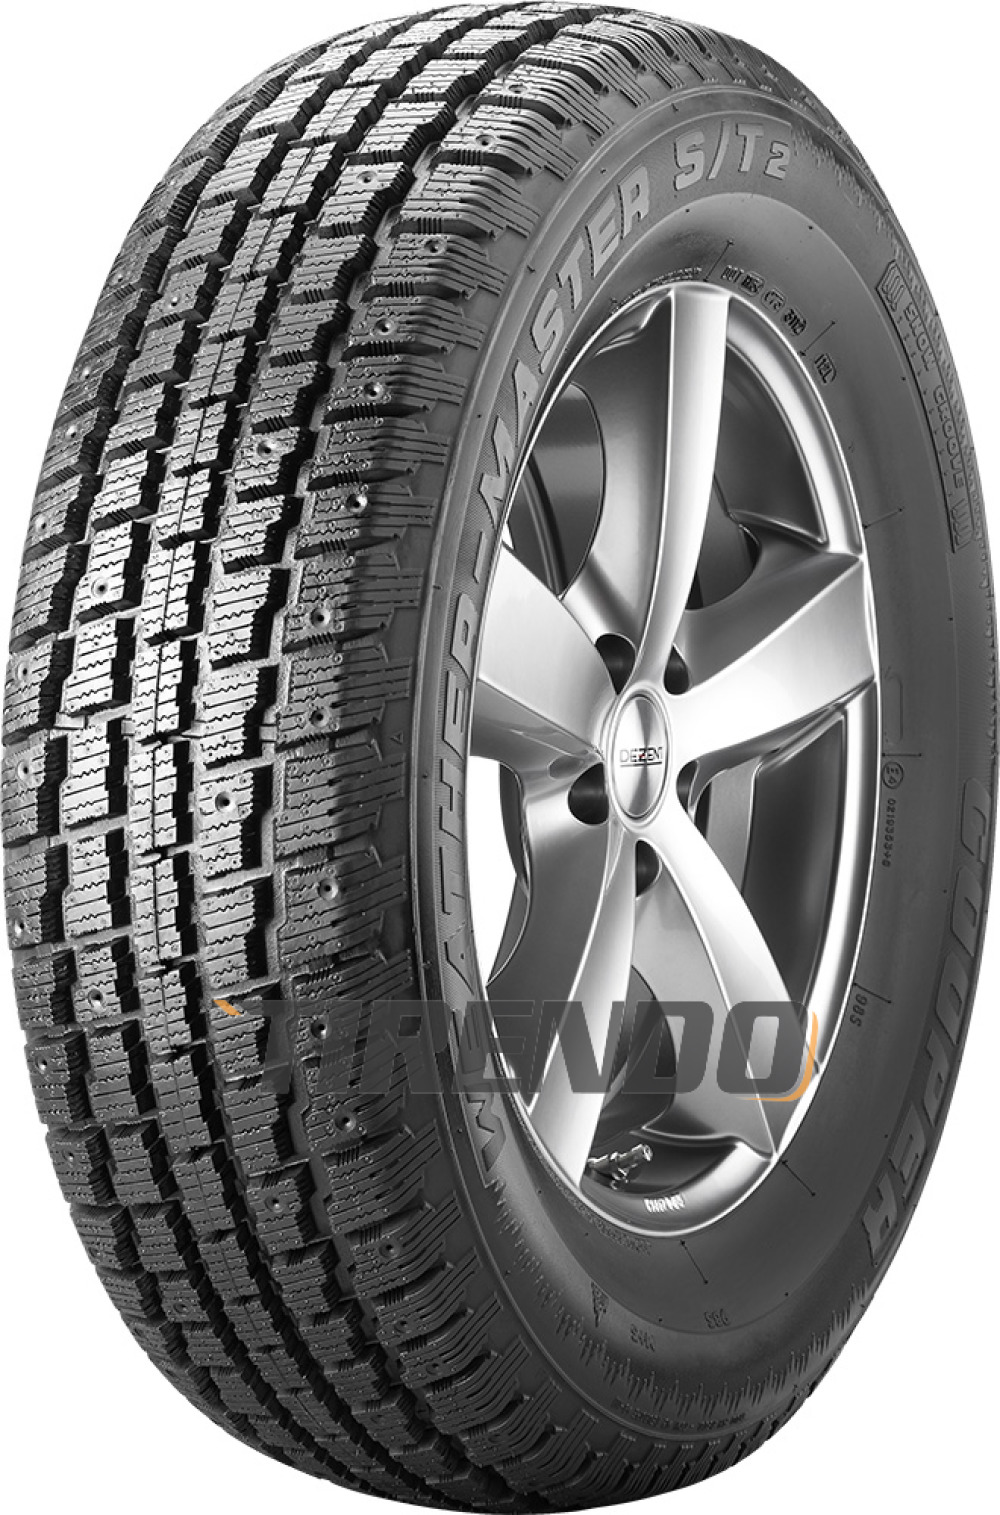 Image For Cooper Weather-master S/T2 ( 215/60 R16 95T pneumatico chiodabile )